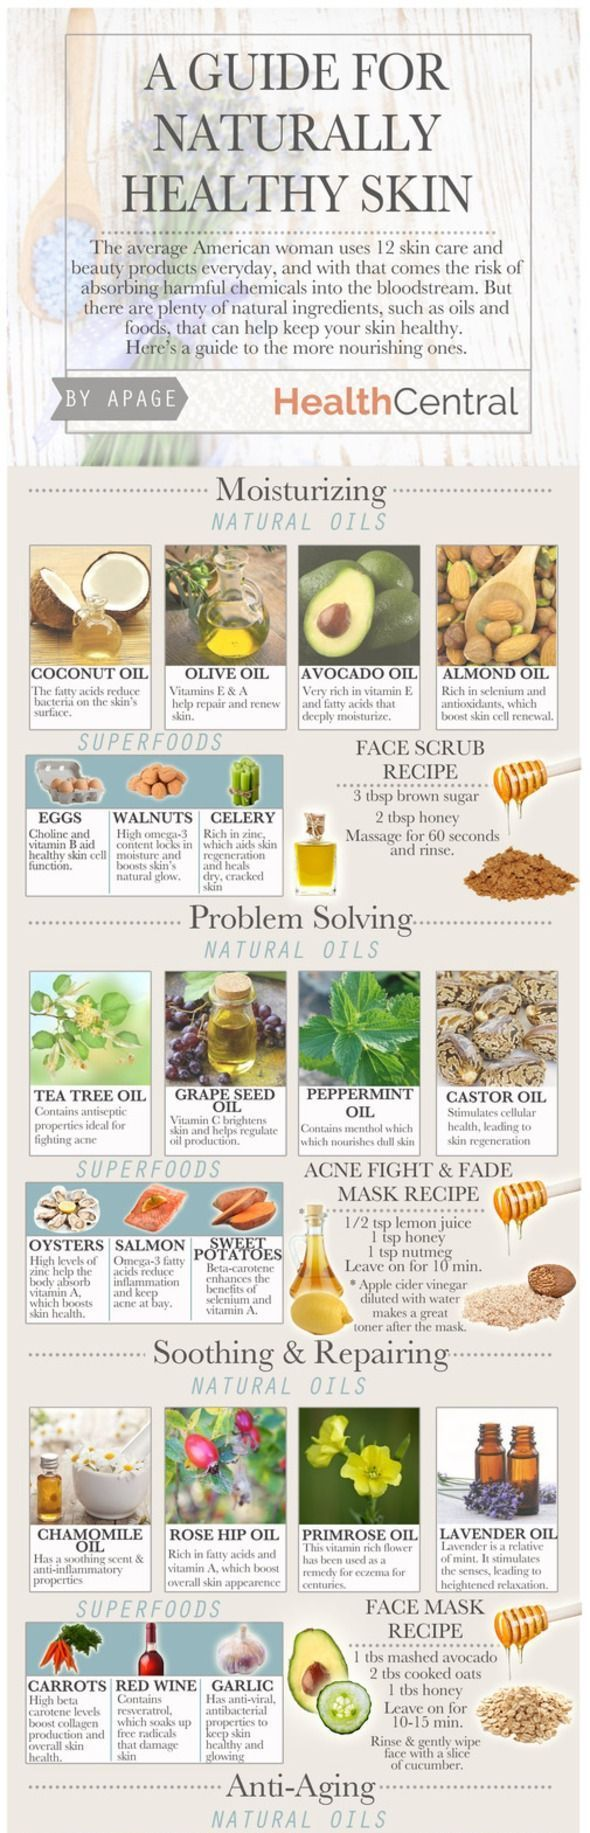 A Guide for Naturally Healthy Skin #skin #healthy #naturalremedies